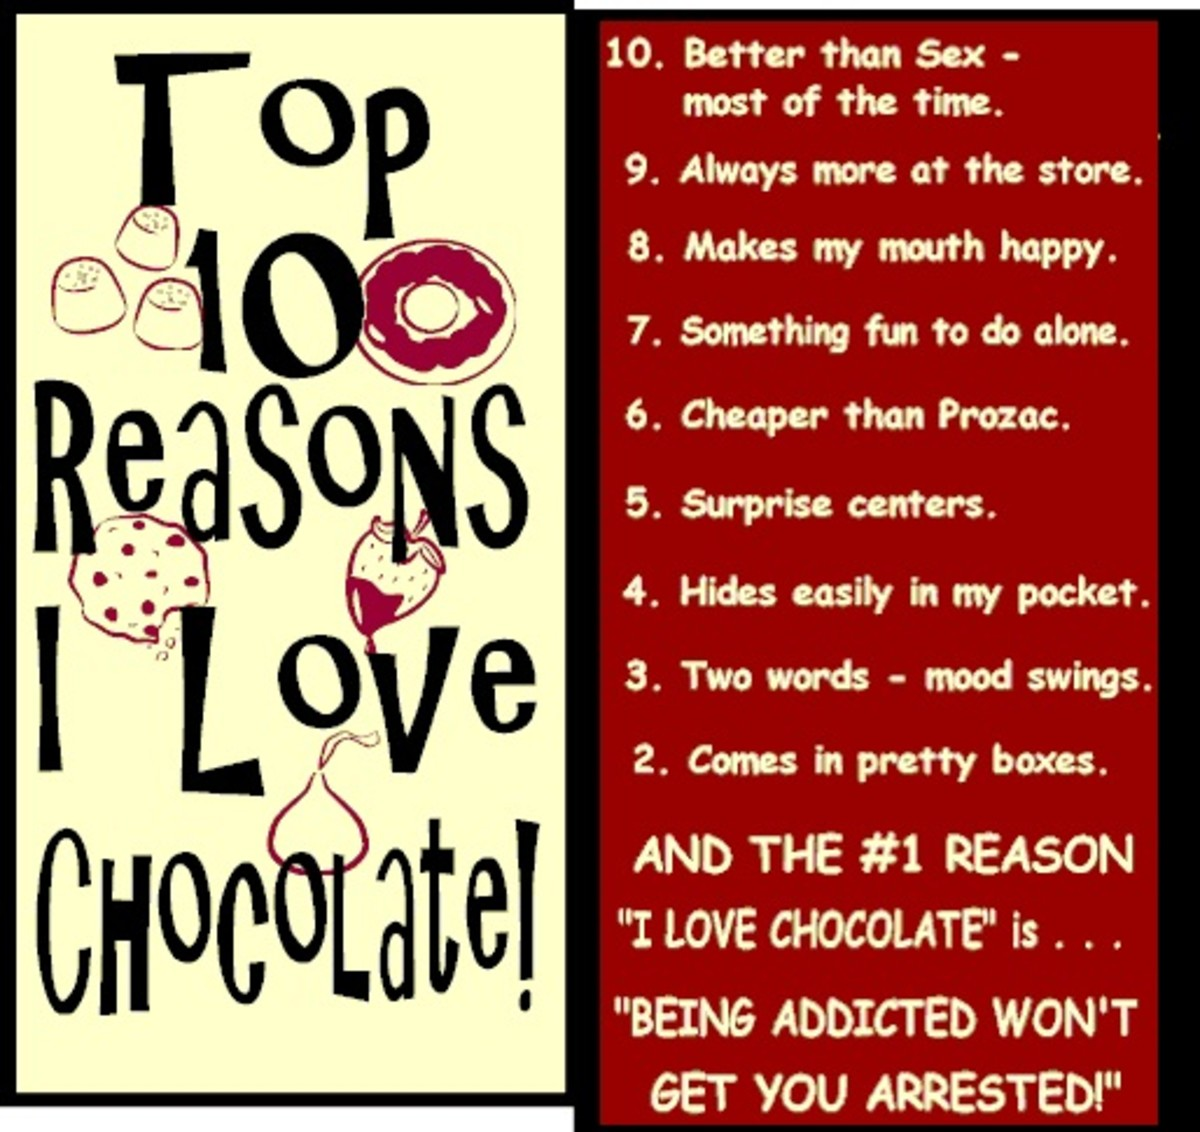 What your next 11 reasons?